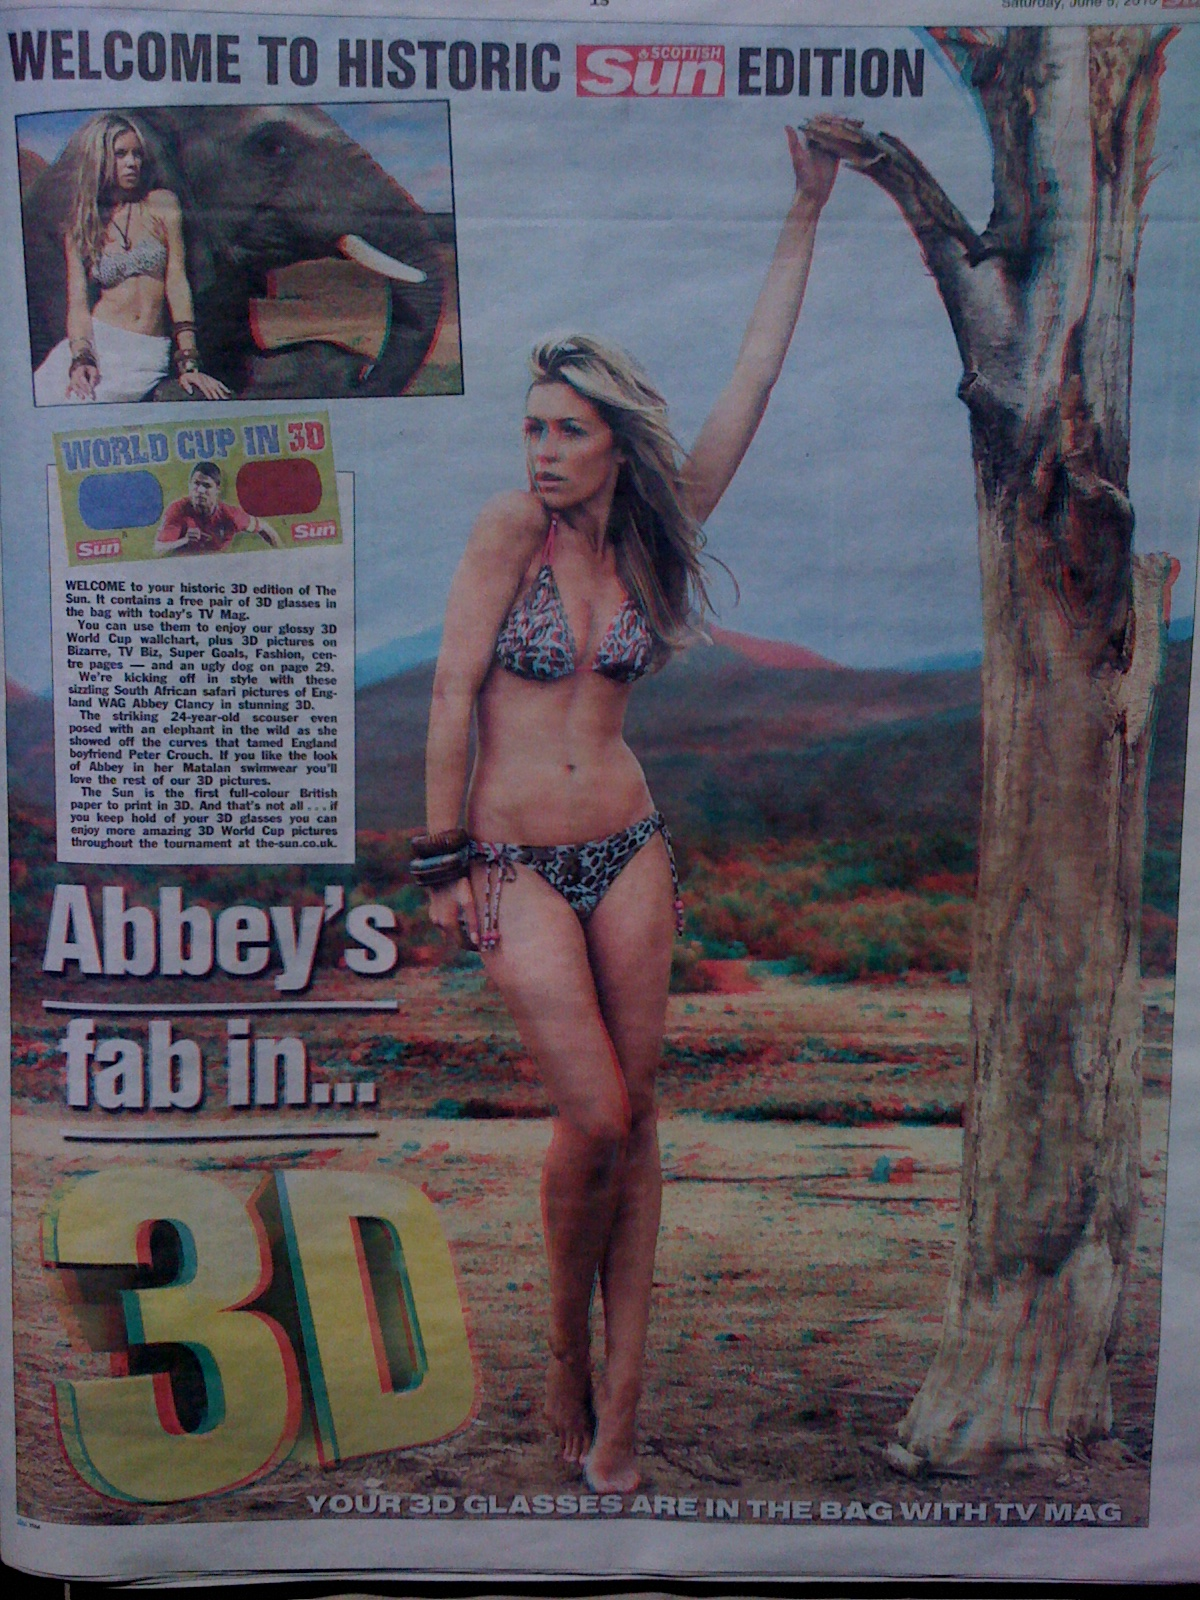 3D Centerfold Lady on 3D Edition of The Sun